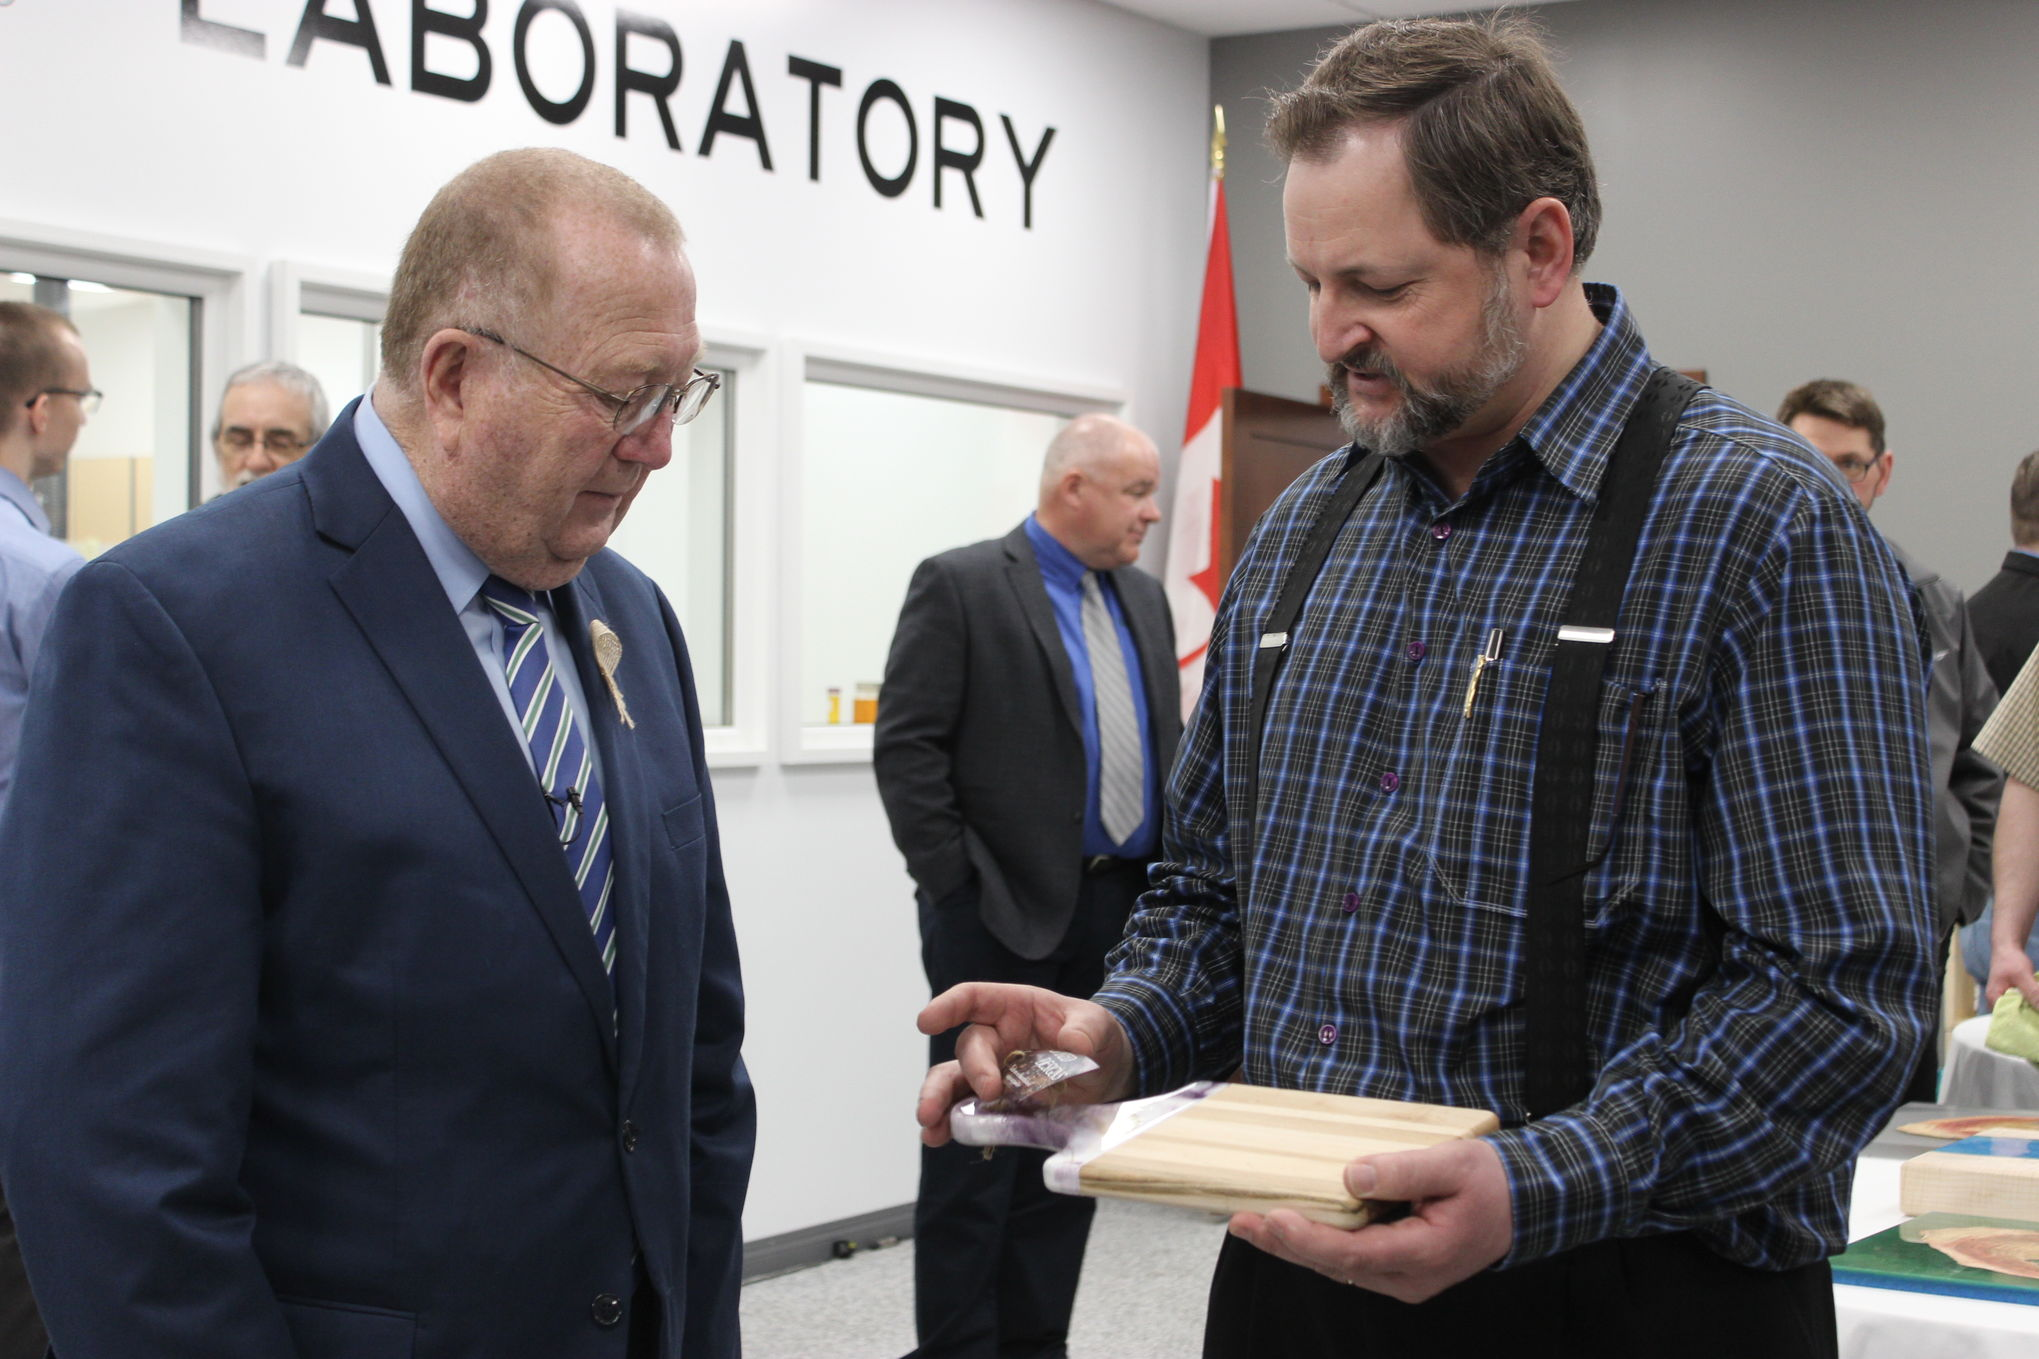 EcoPoxy CEO Jack Maendel presents Agriculture Minister Ralph Eichler with an epoxy-accented wooden cutting board made by Mike Cancade, executive assistant to Provencher MP Ted Falk. Maendel says his company, located near Morris, will use $167,000 in joint government funding to purchase much-needed packaging and testing equipment.